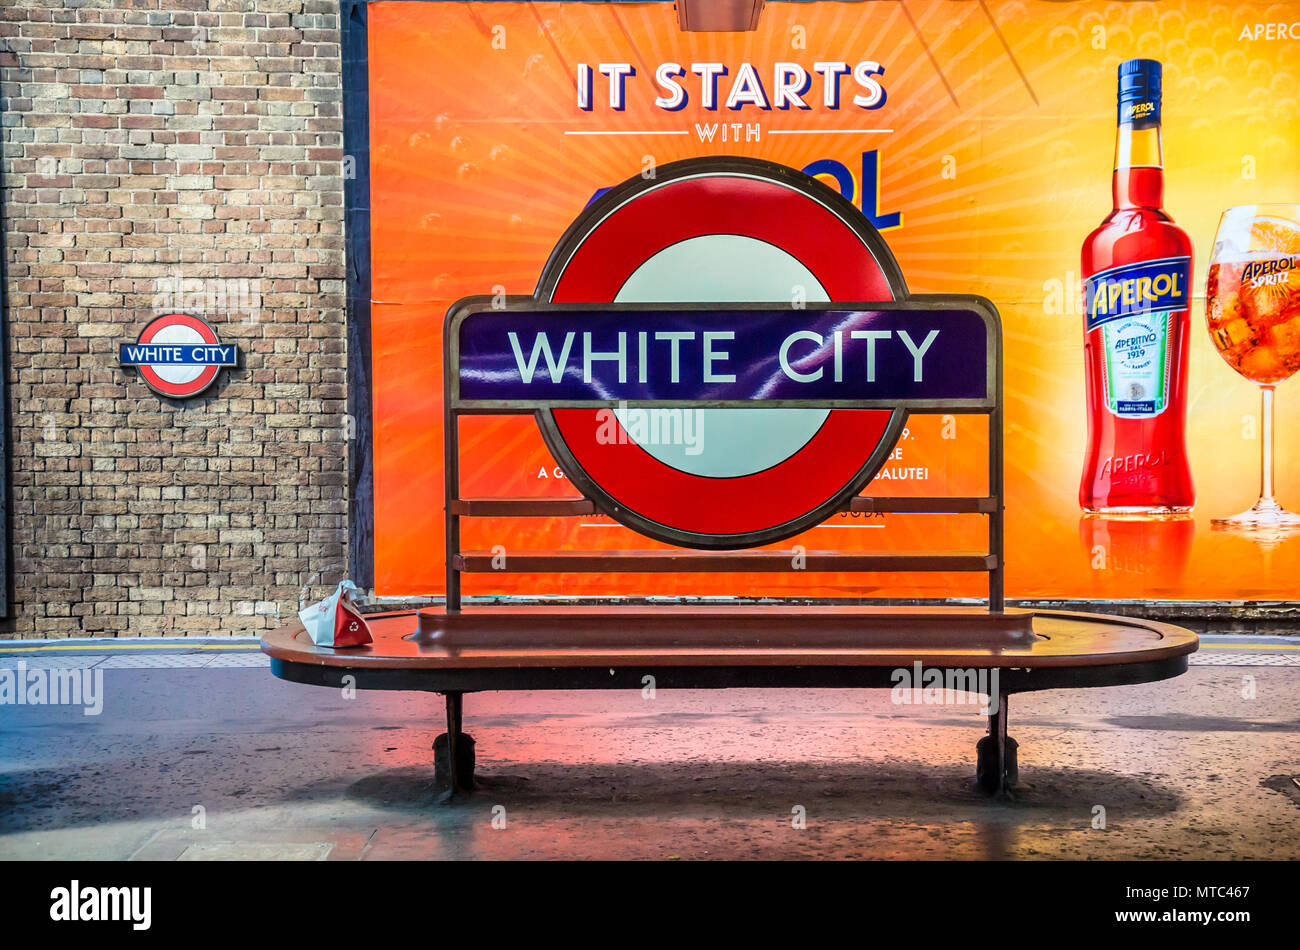 an-iconic-london-underground-station-name-sign-attached-to-a-bench-on-the-platform-at-white-city-station-MTC467.jpg